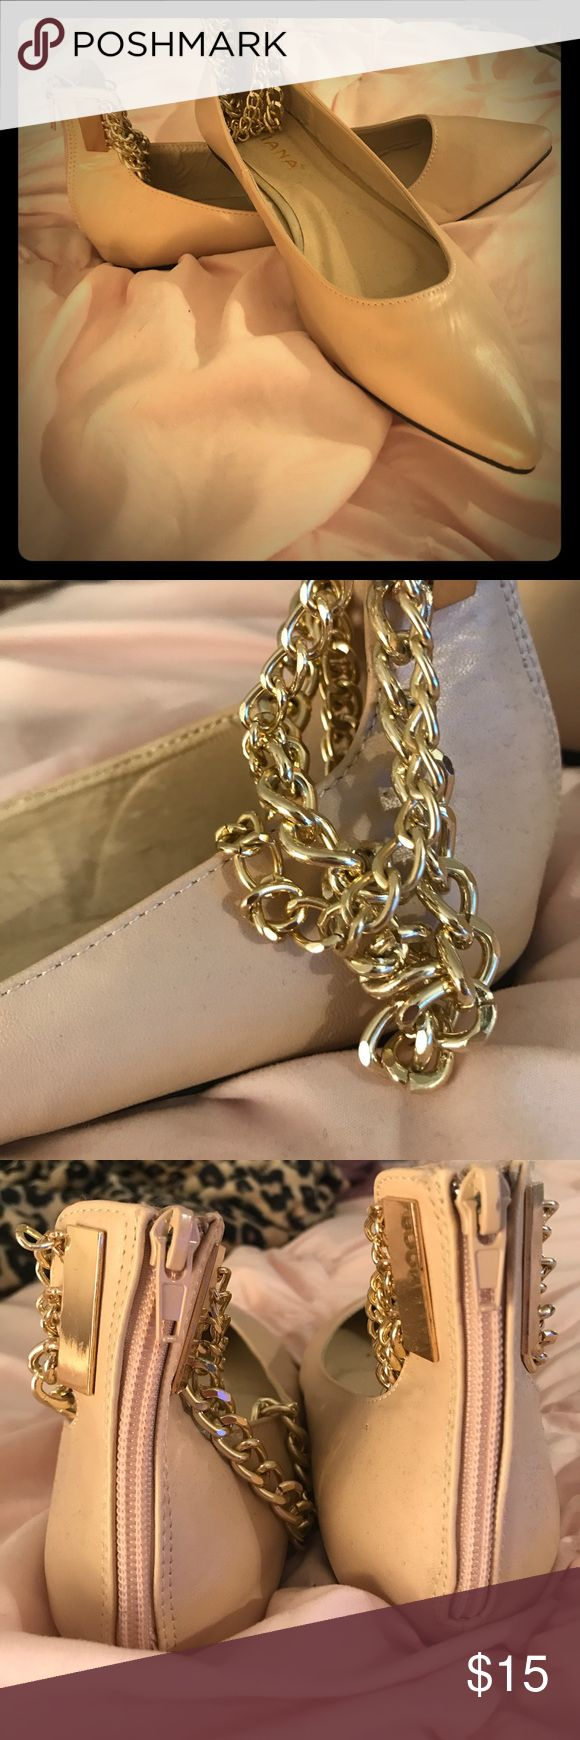 Nude flats with gold wrap chains ✨ Nude flats with gold wrap ankle chains and zip up backs. Worn twice - great condition! Liliana Shoes Flats & Loafers